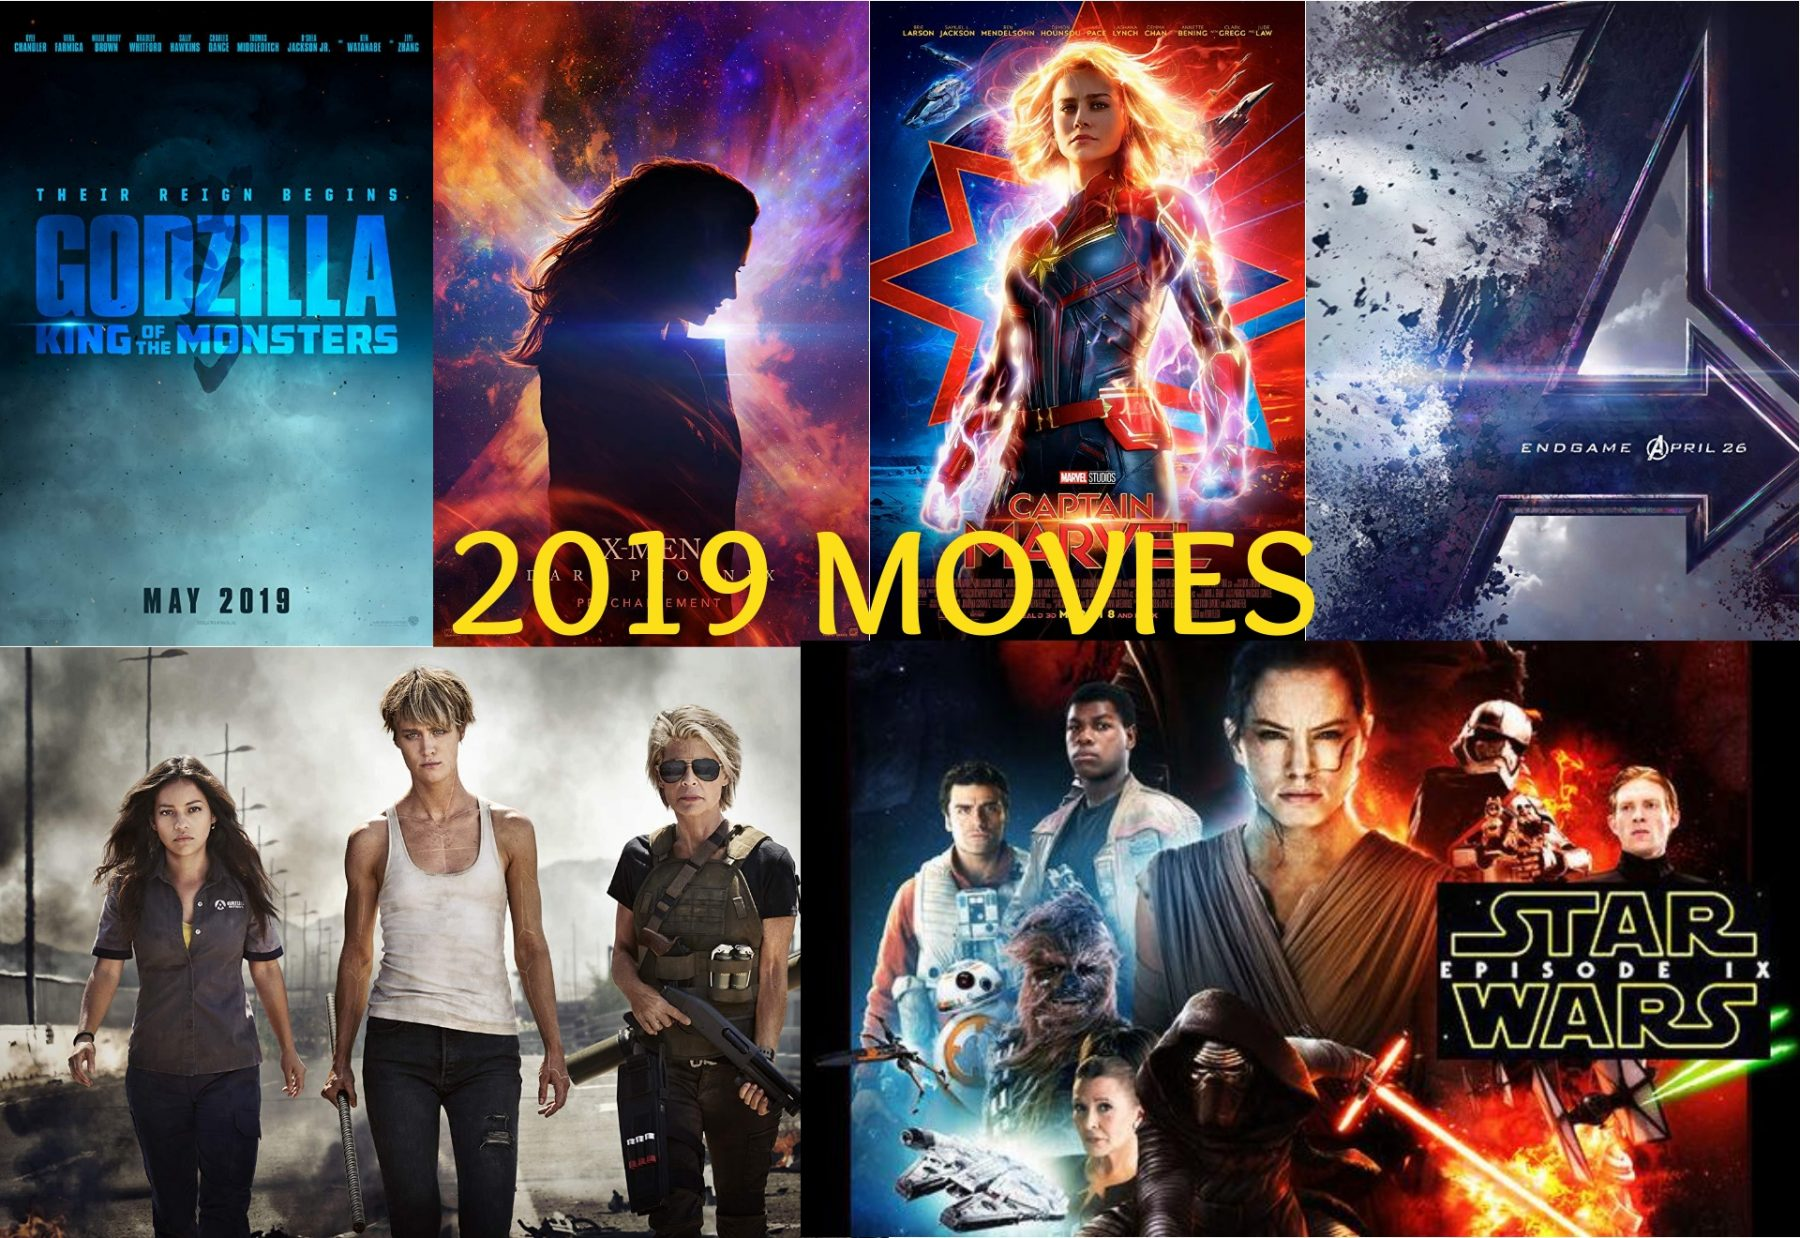 Top 10 Best and Most Anticipated Movies to Watch in 2019